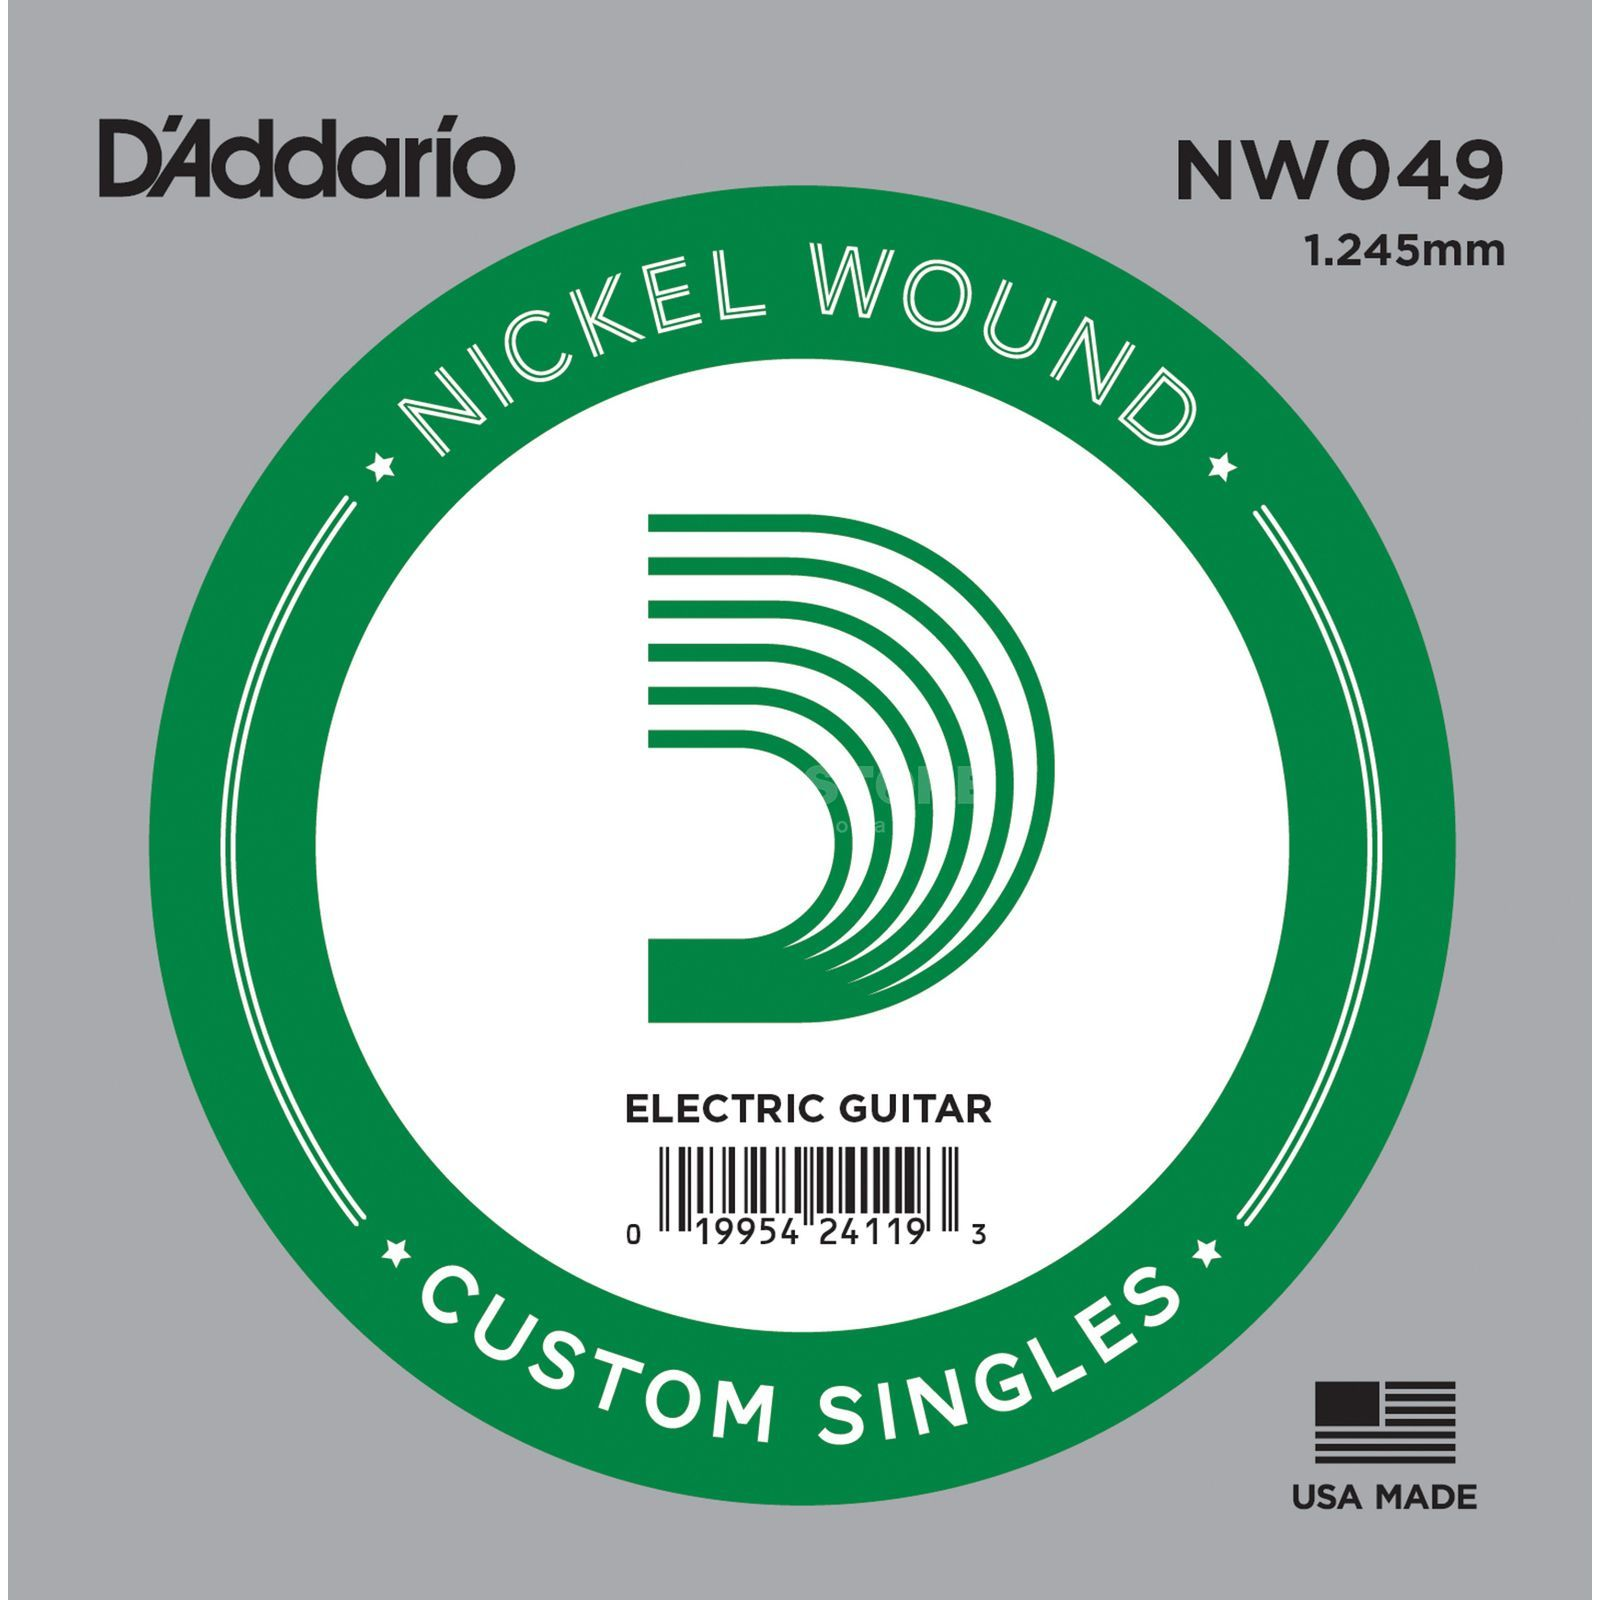 D'Addario Single String NW049 Nickelwound Zdjęcie produktu